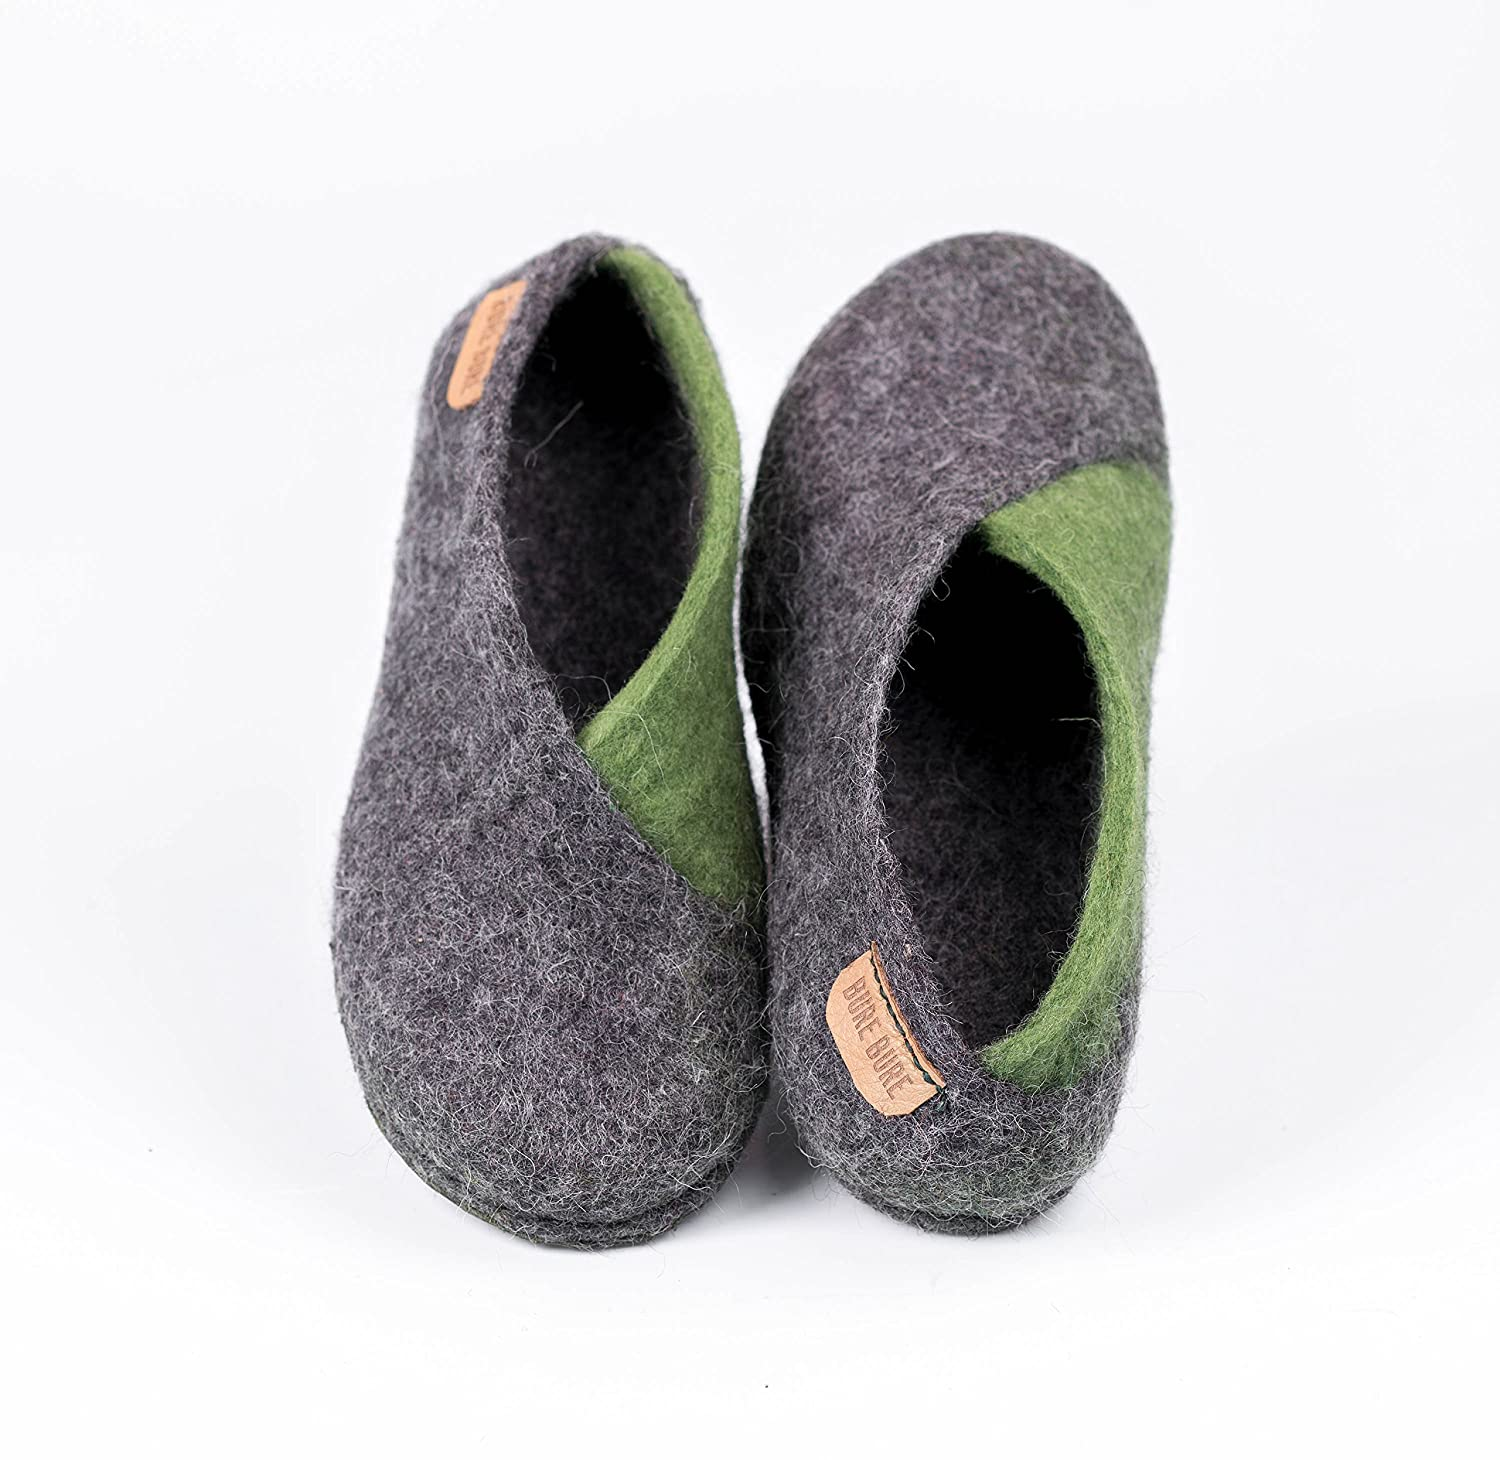 Gray and Olive green ENVELOPE slippers for women, Warm handmade felted wool shoes